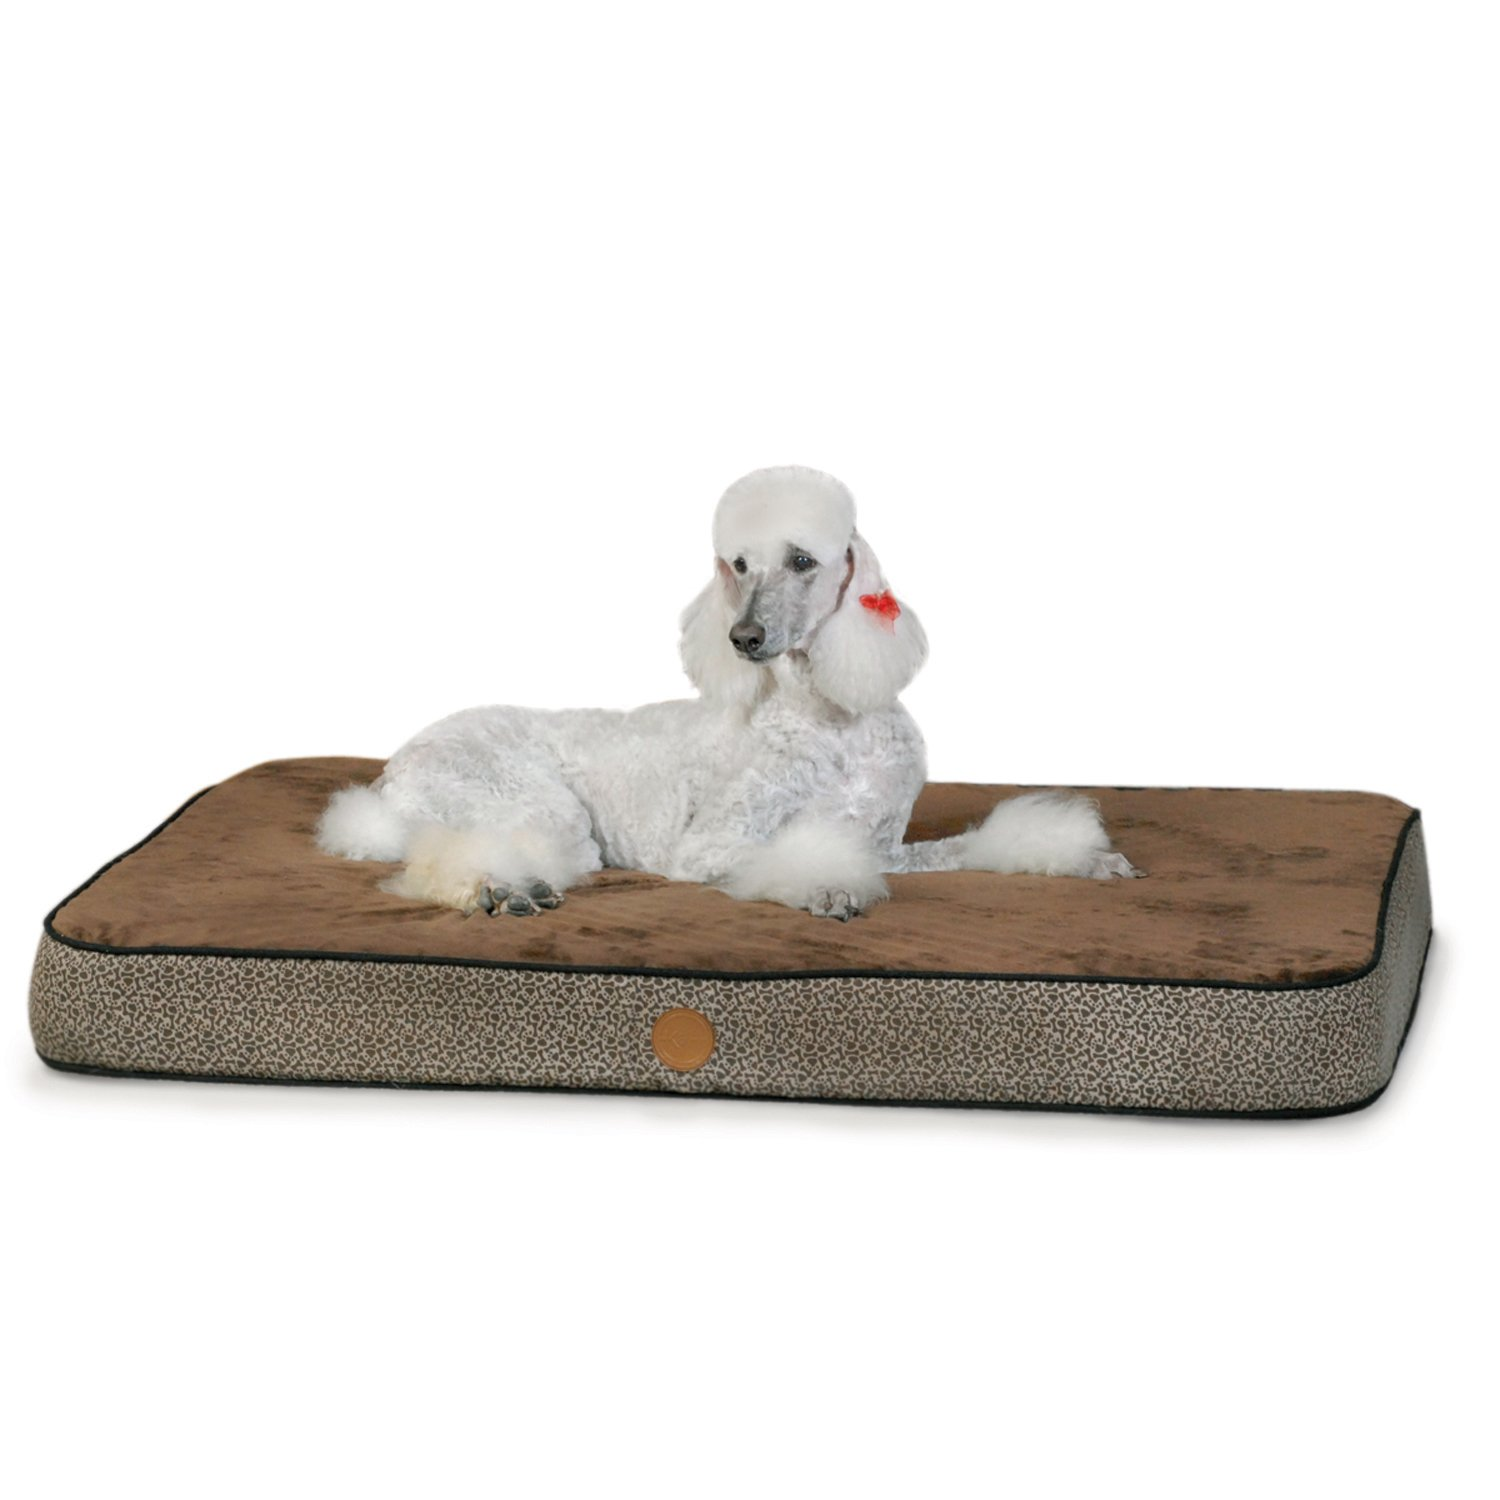 best dog beds for older dogs keeping your companion comfy With best dog bed for large older dogs